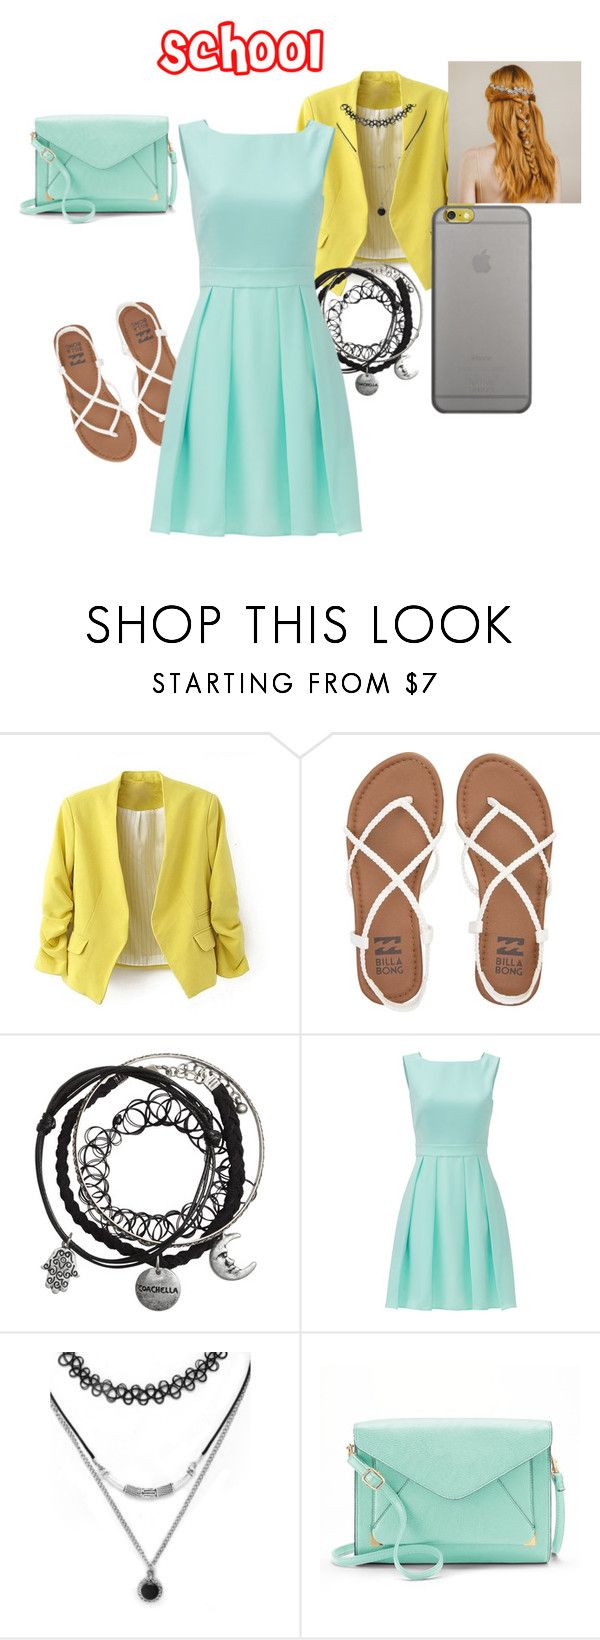 """""""School"""" by firstbest on Polyvore featuring Billabong, Kate Spade, Forever 21, Apt. 9 and Native Union"""